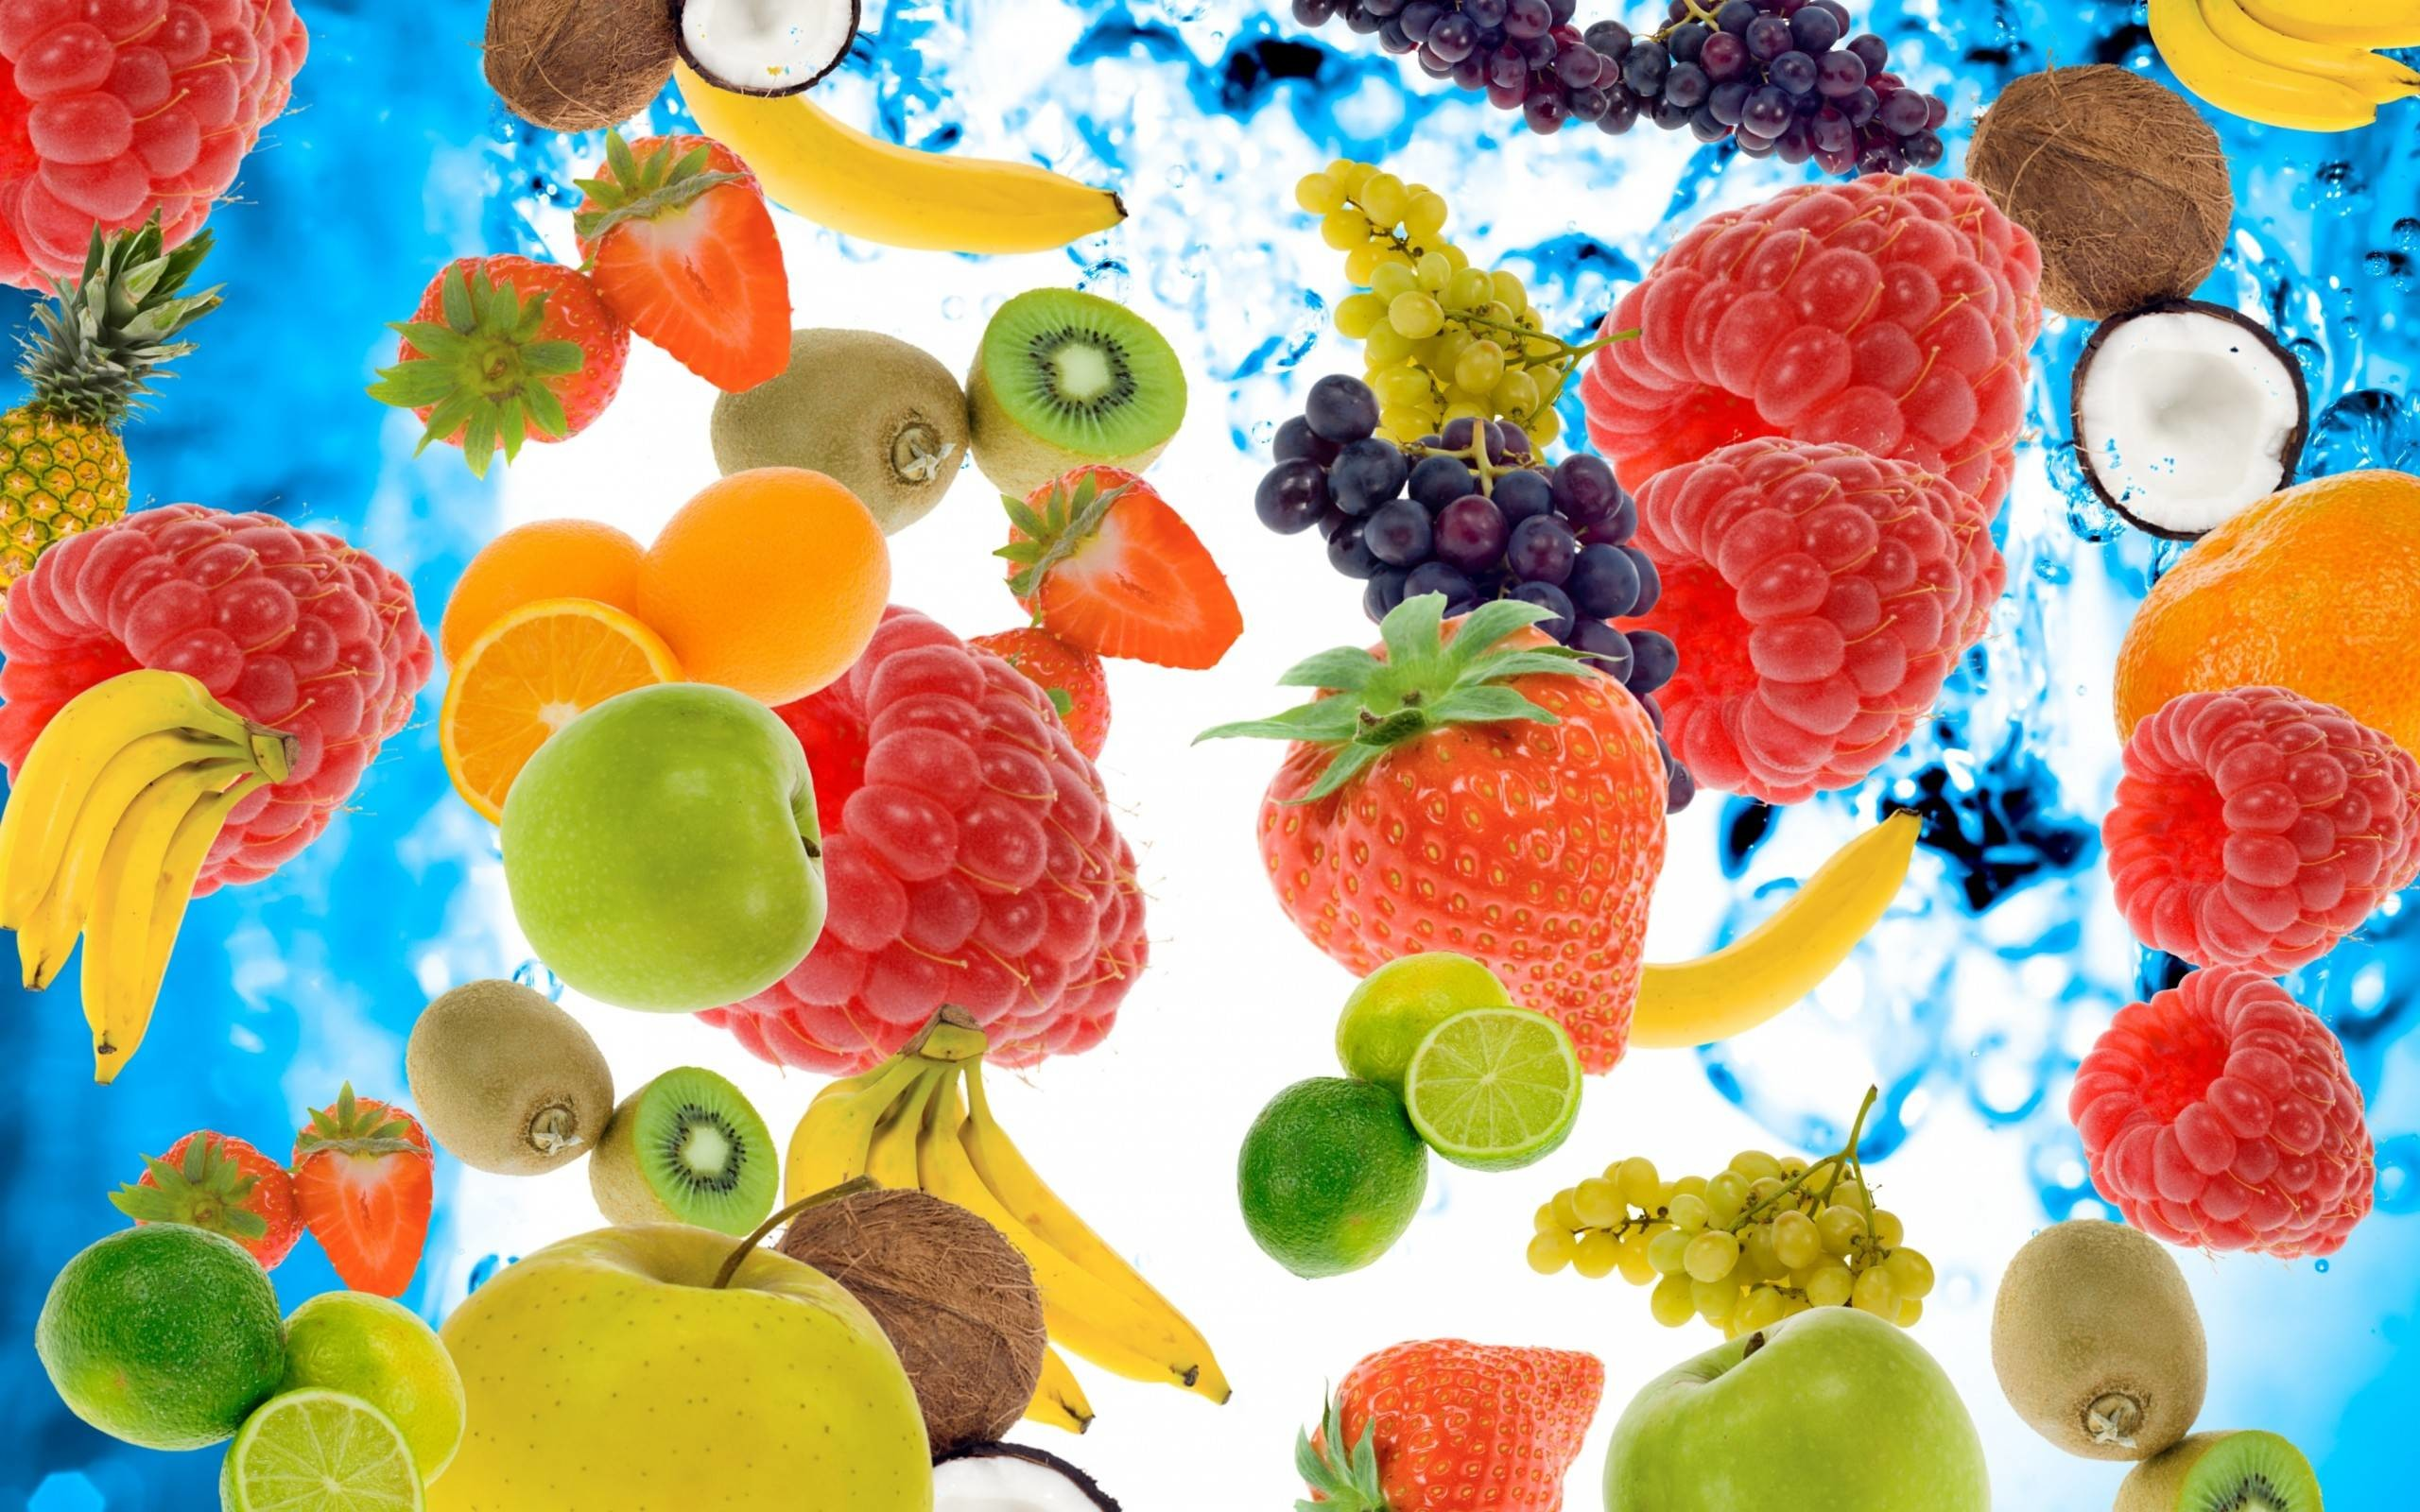 Res: 2560x1600, Fruits. | Fruit Wallpapers